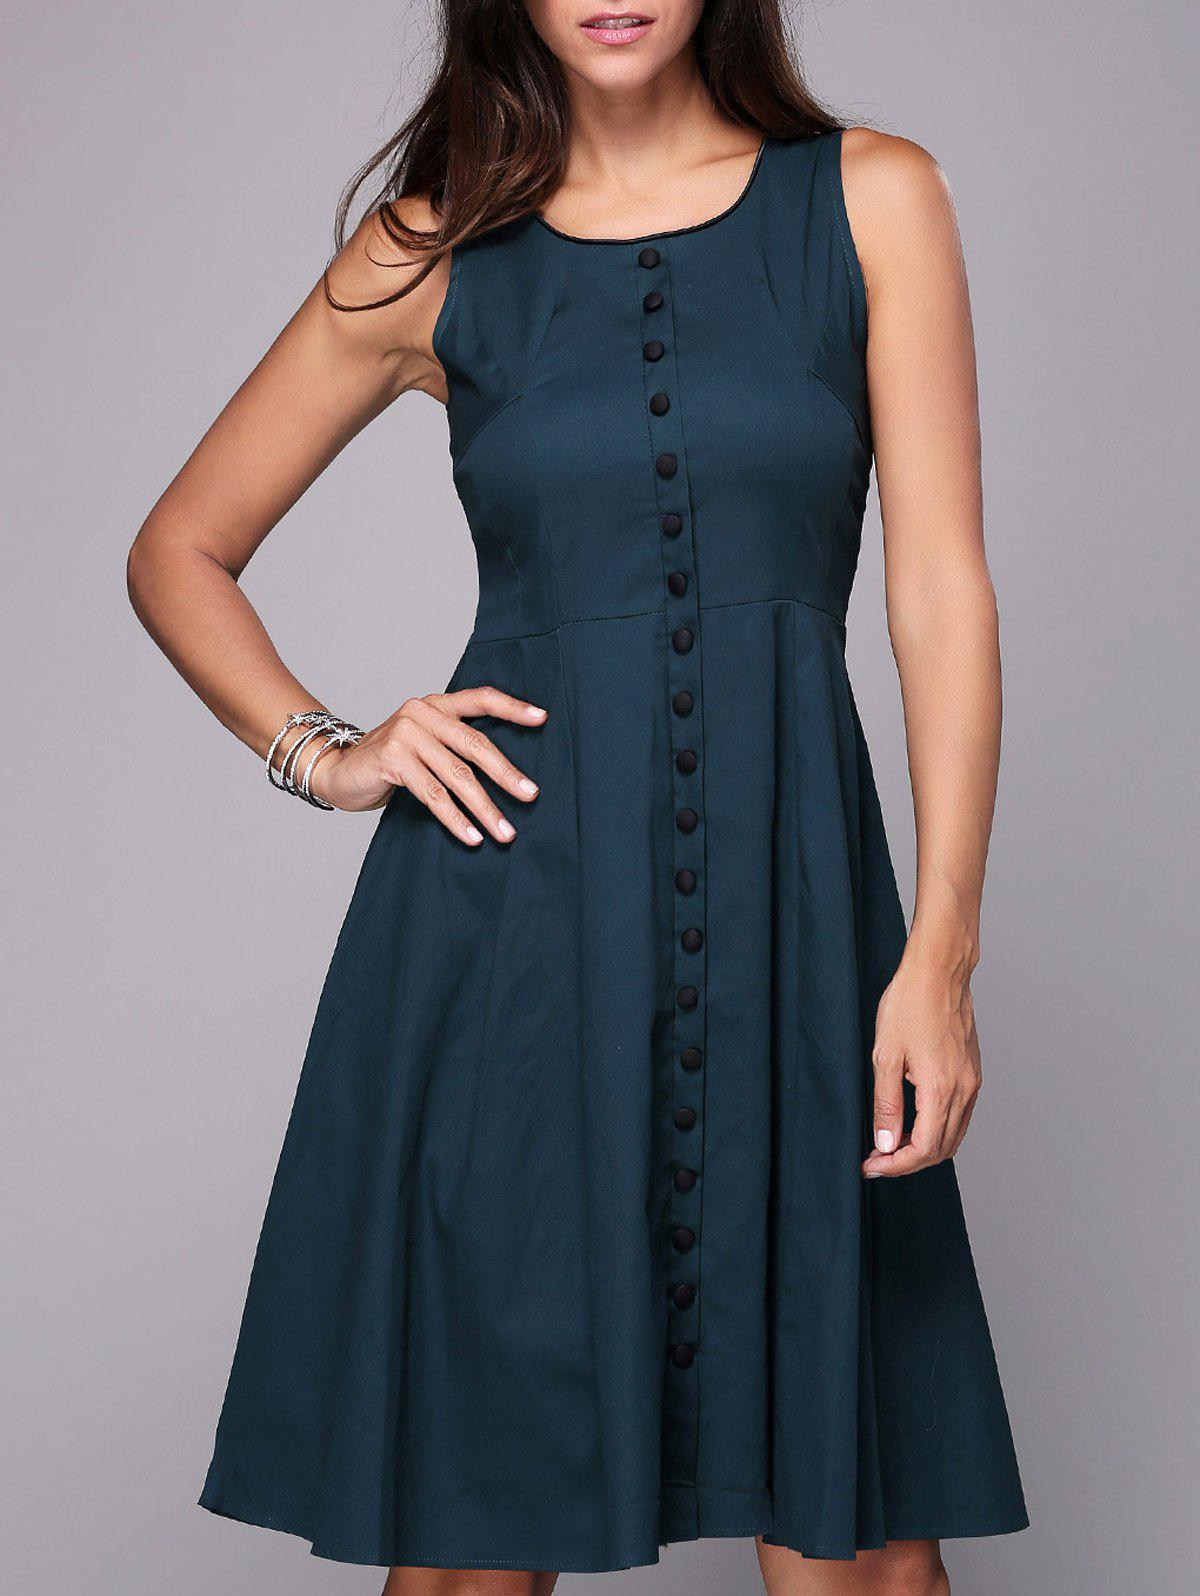 Sleeveless Button Up Fit and Flare Dress - GREEN 2XL